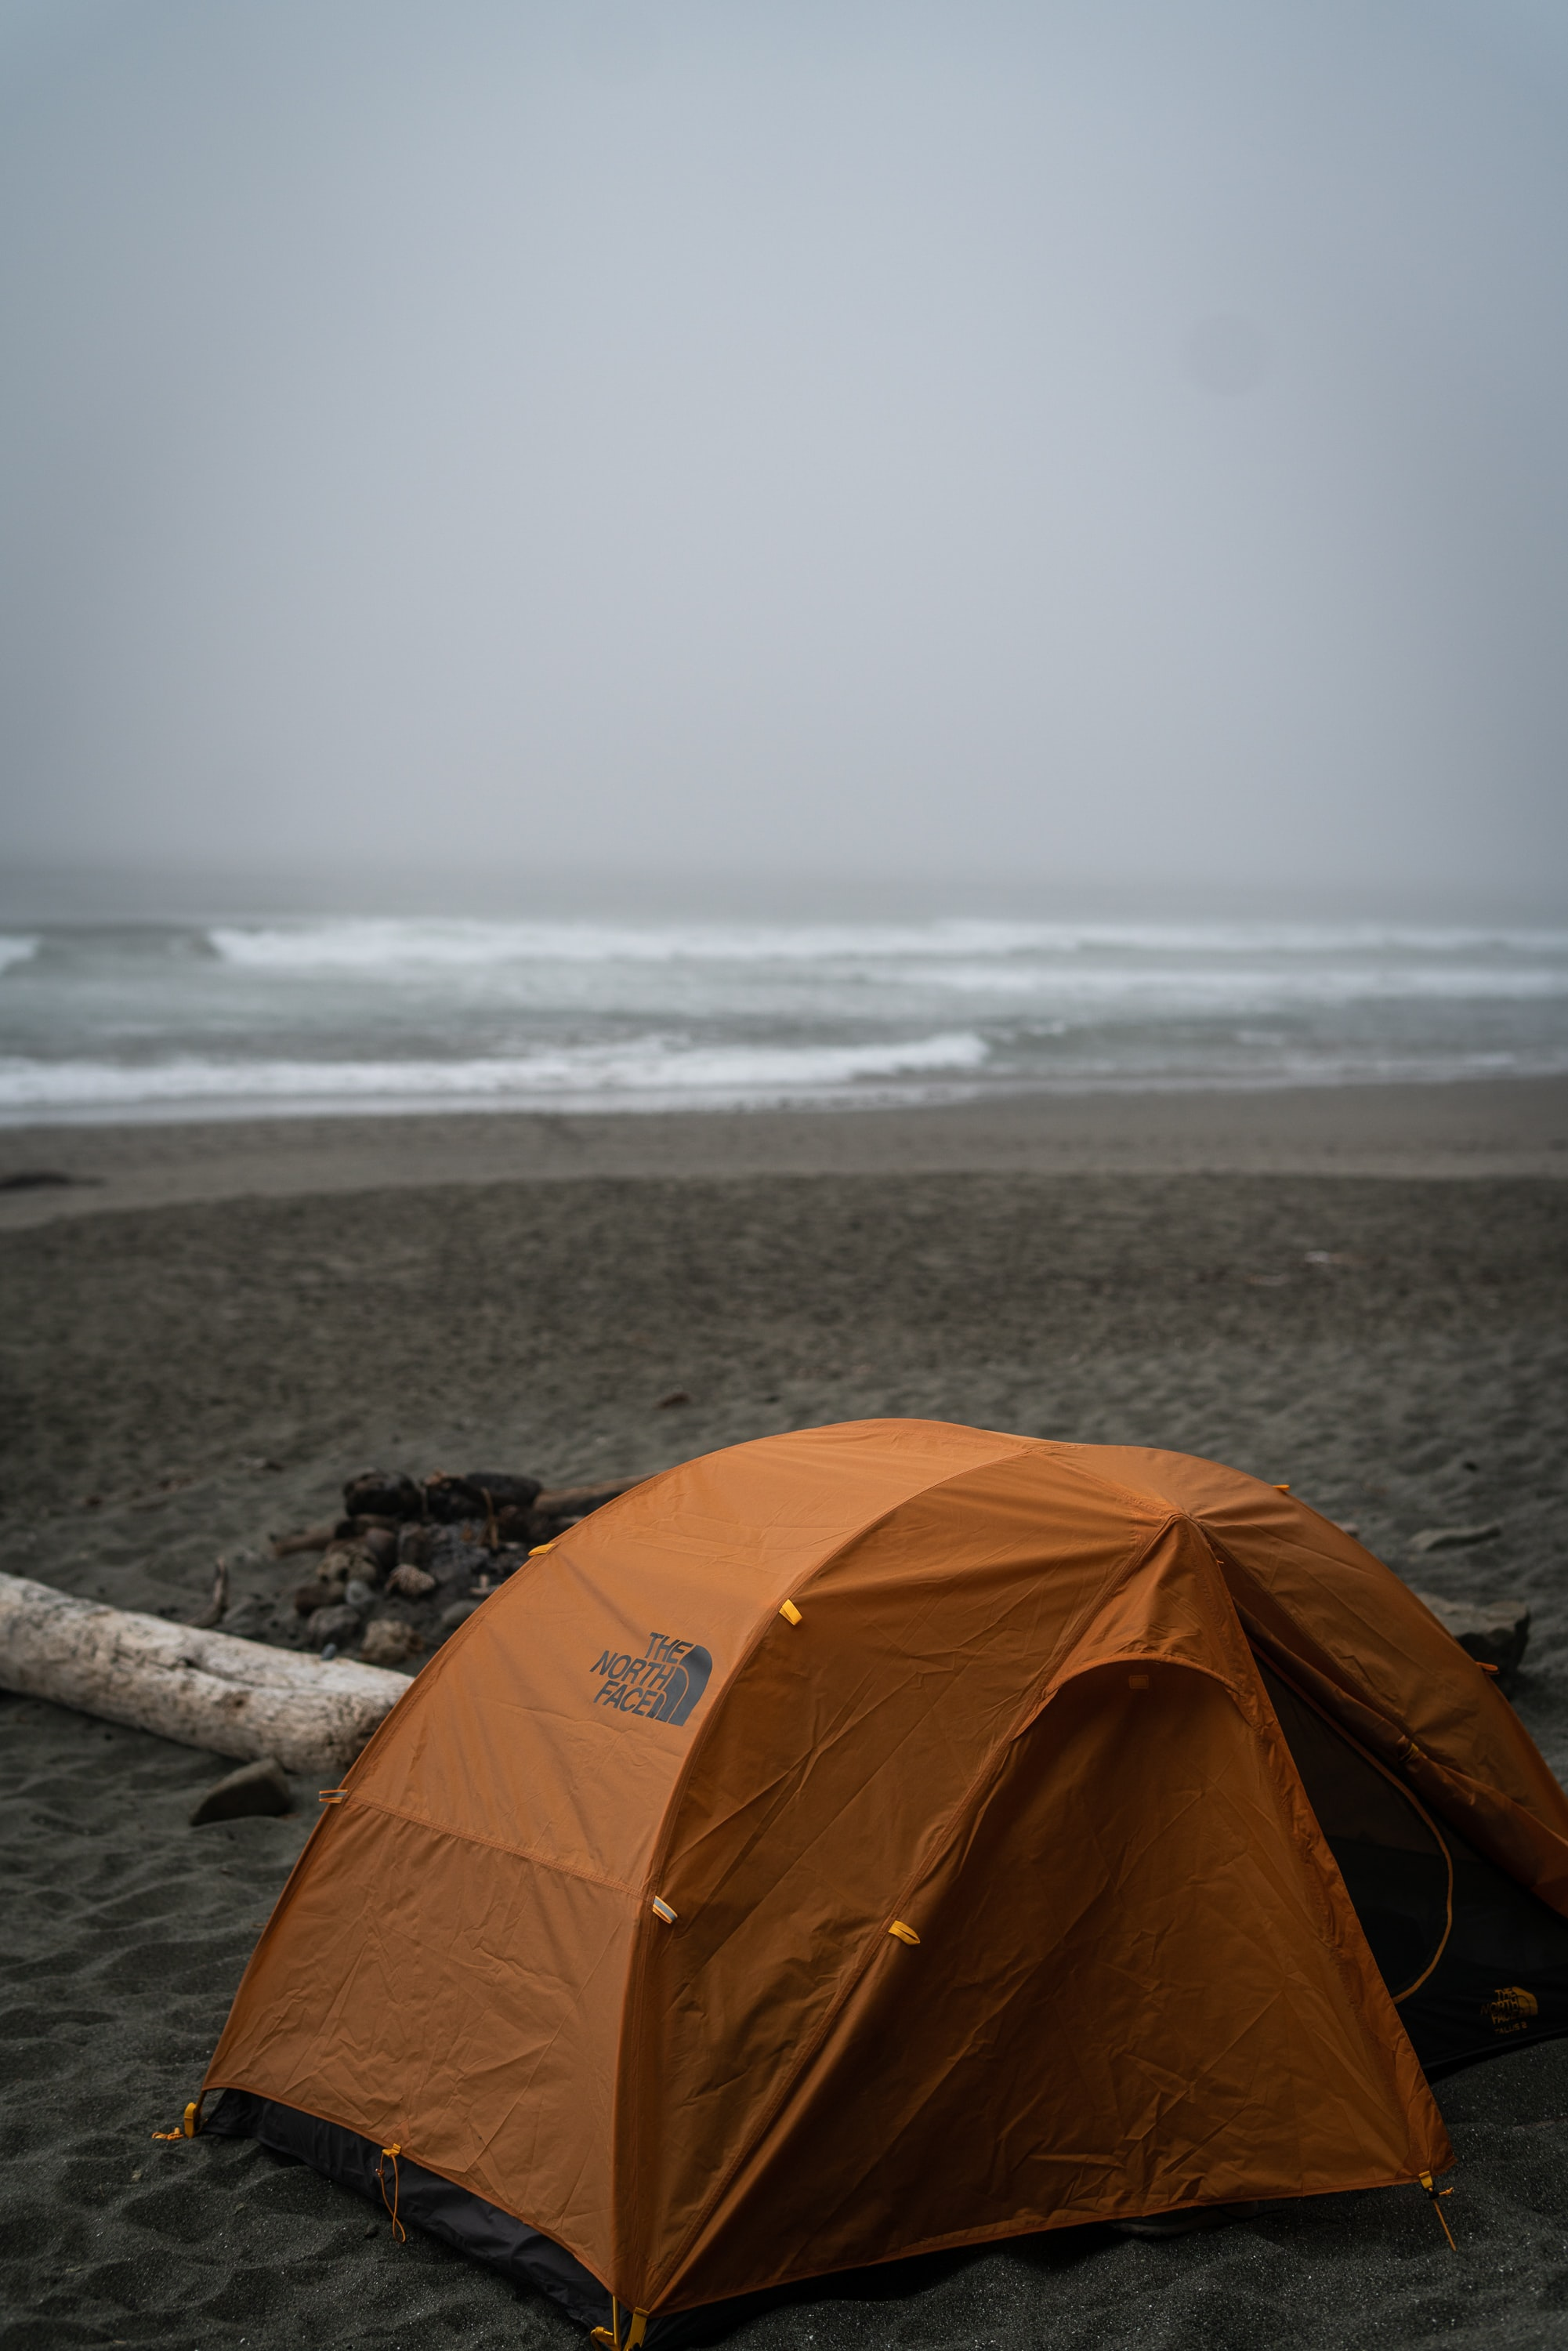 orange tent on sand near seashore